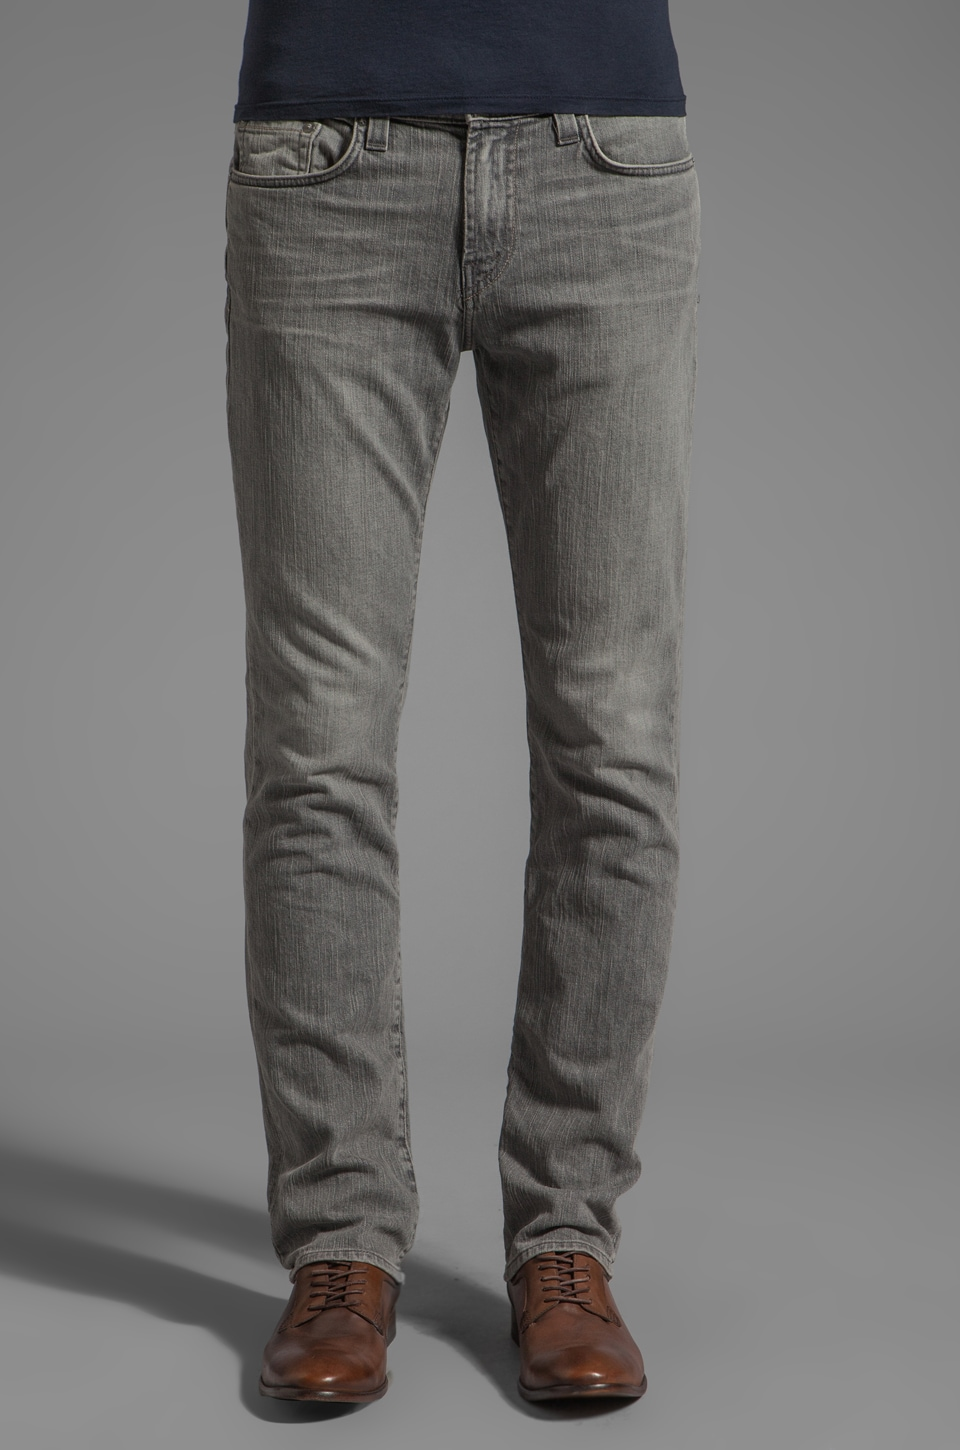 J Brand Kane Jeans in Premonition